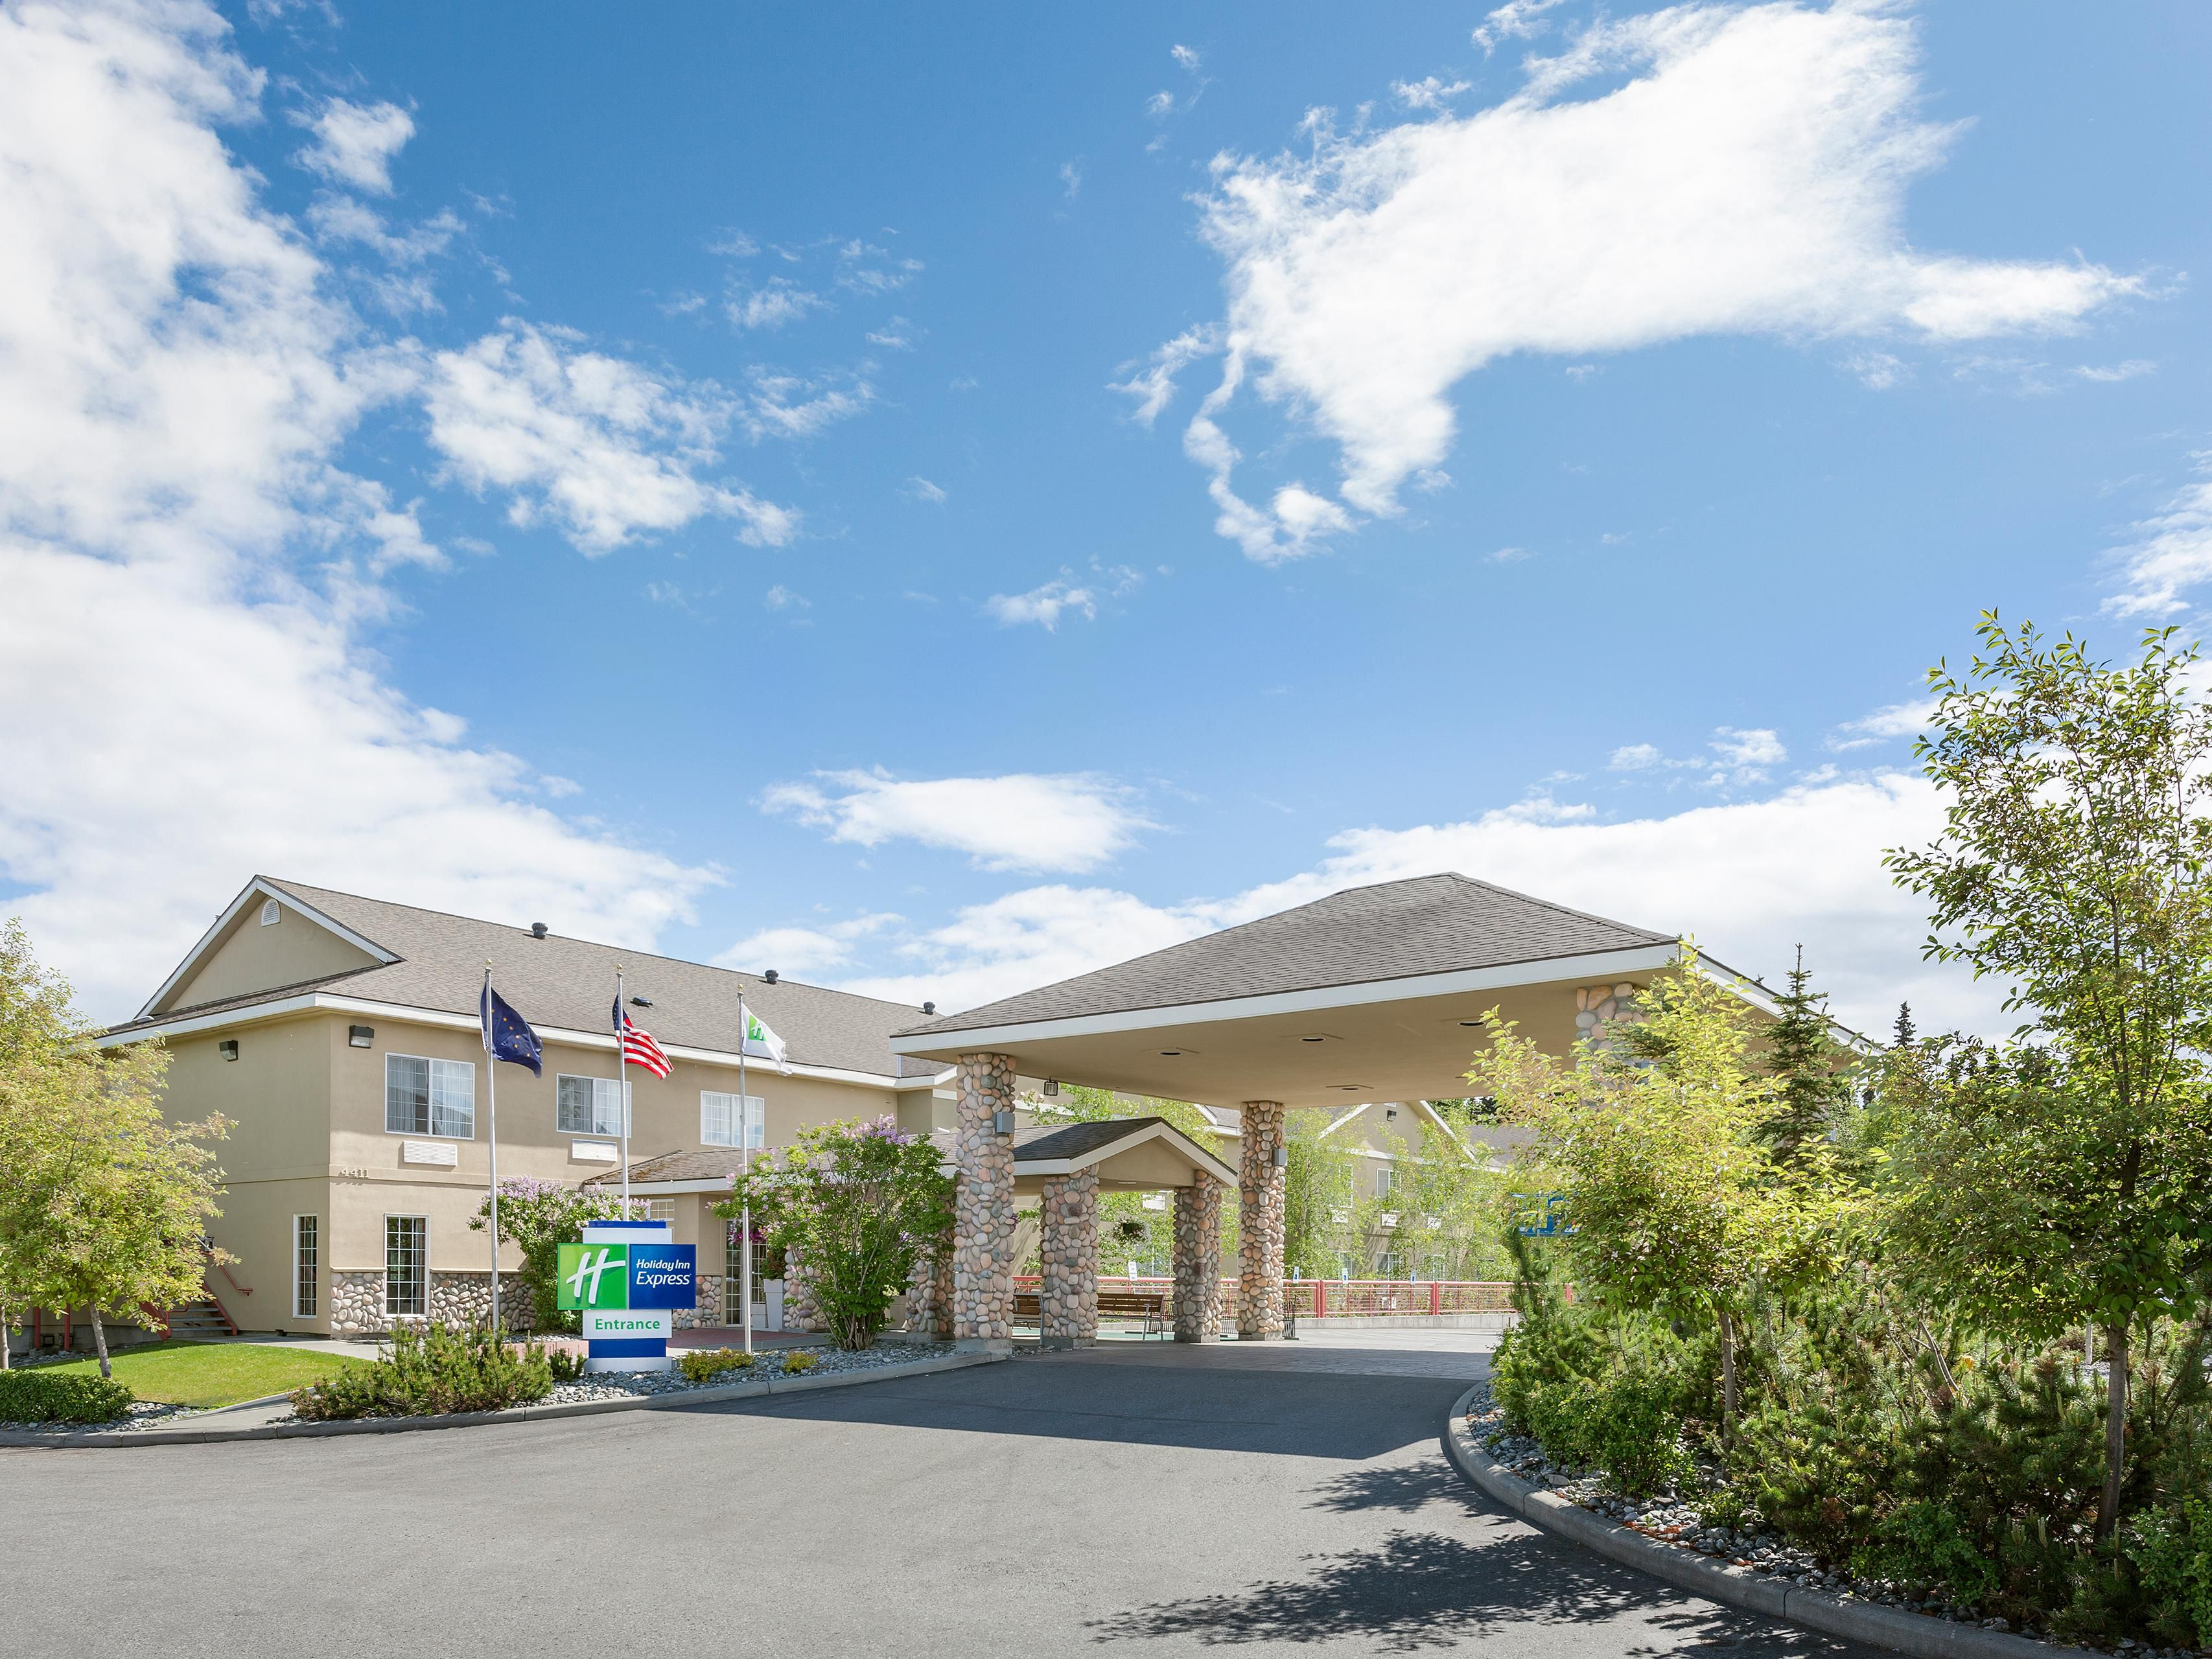 Holiday Inn Express Hotel Anchorage